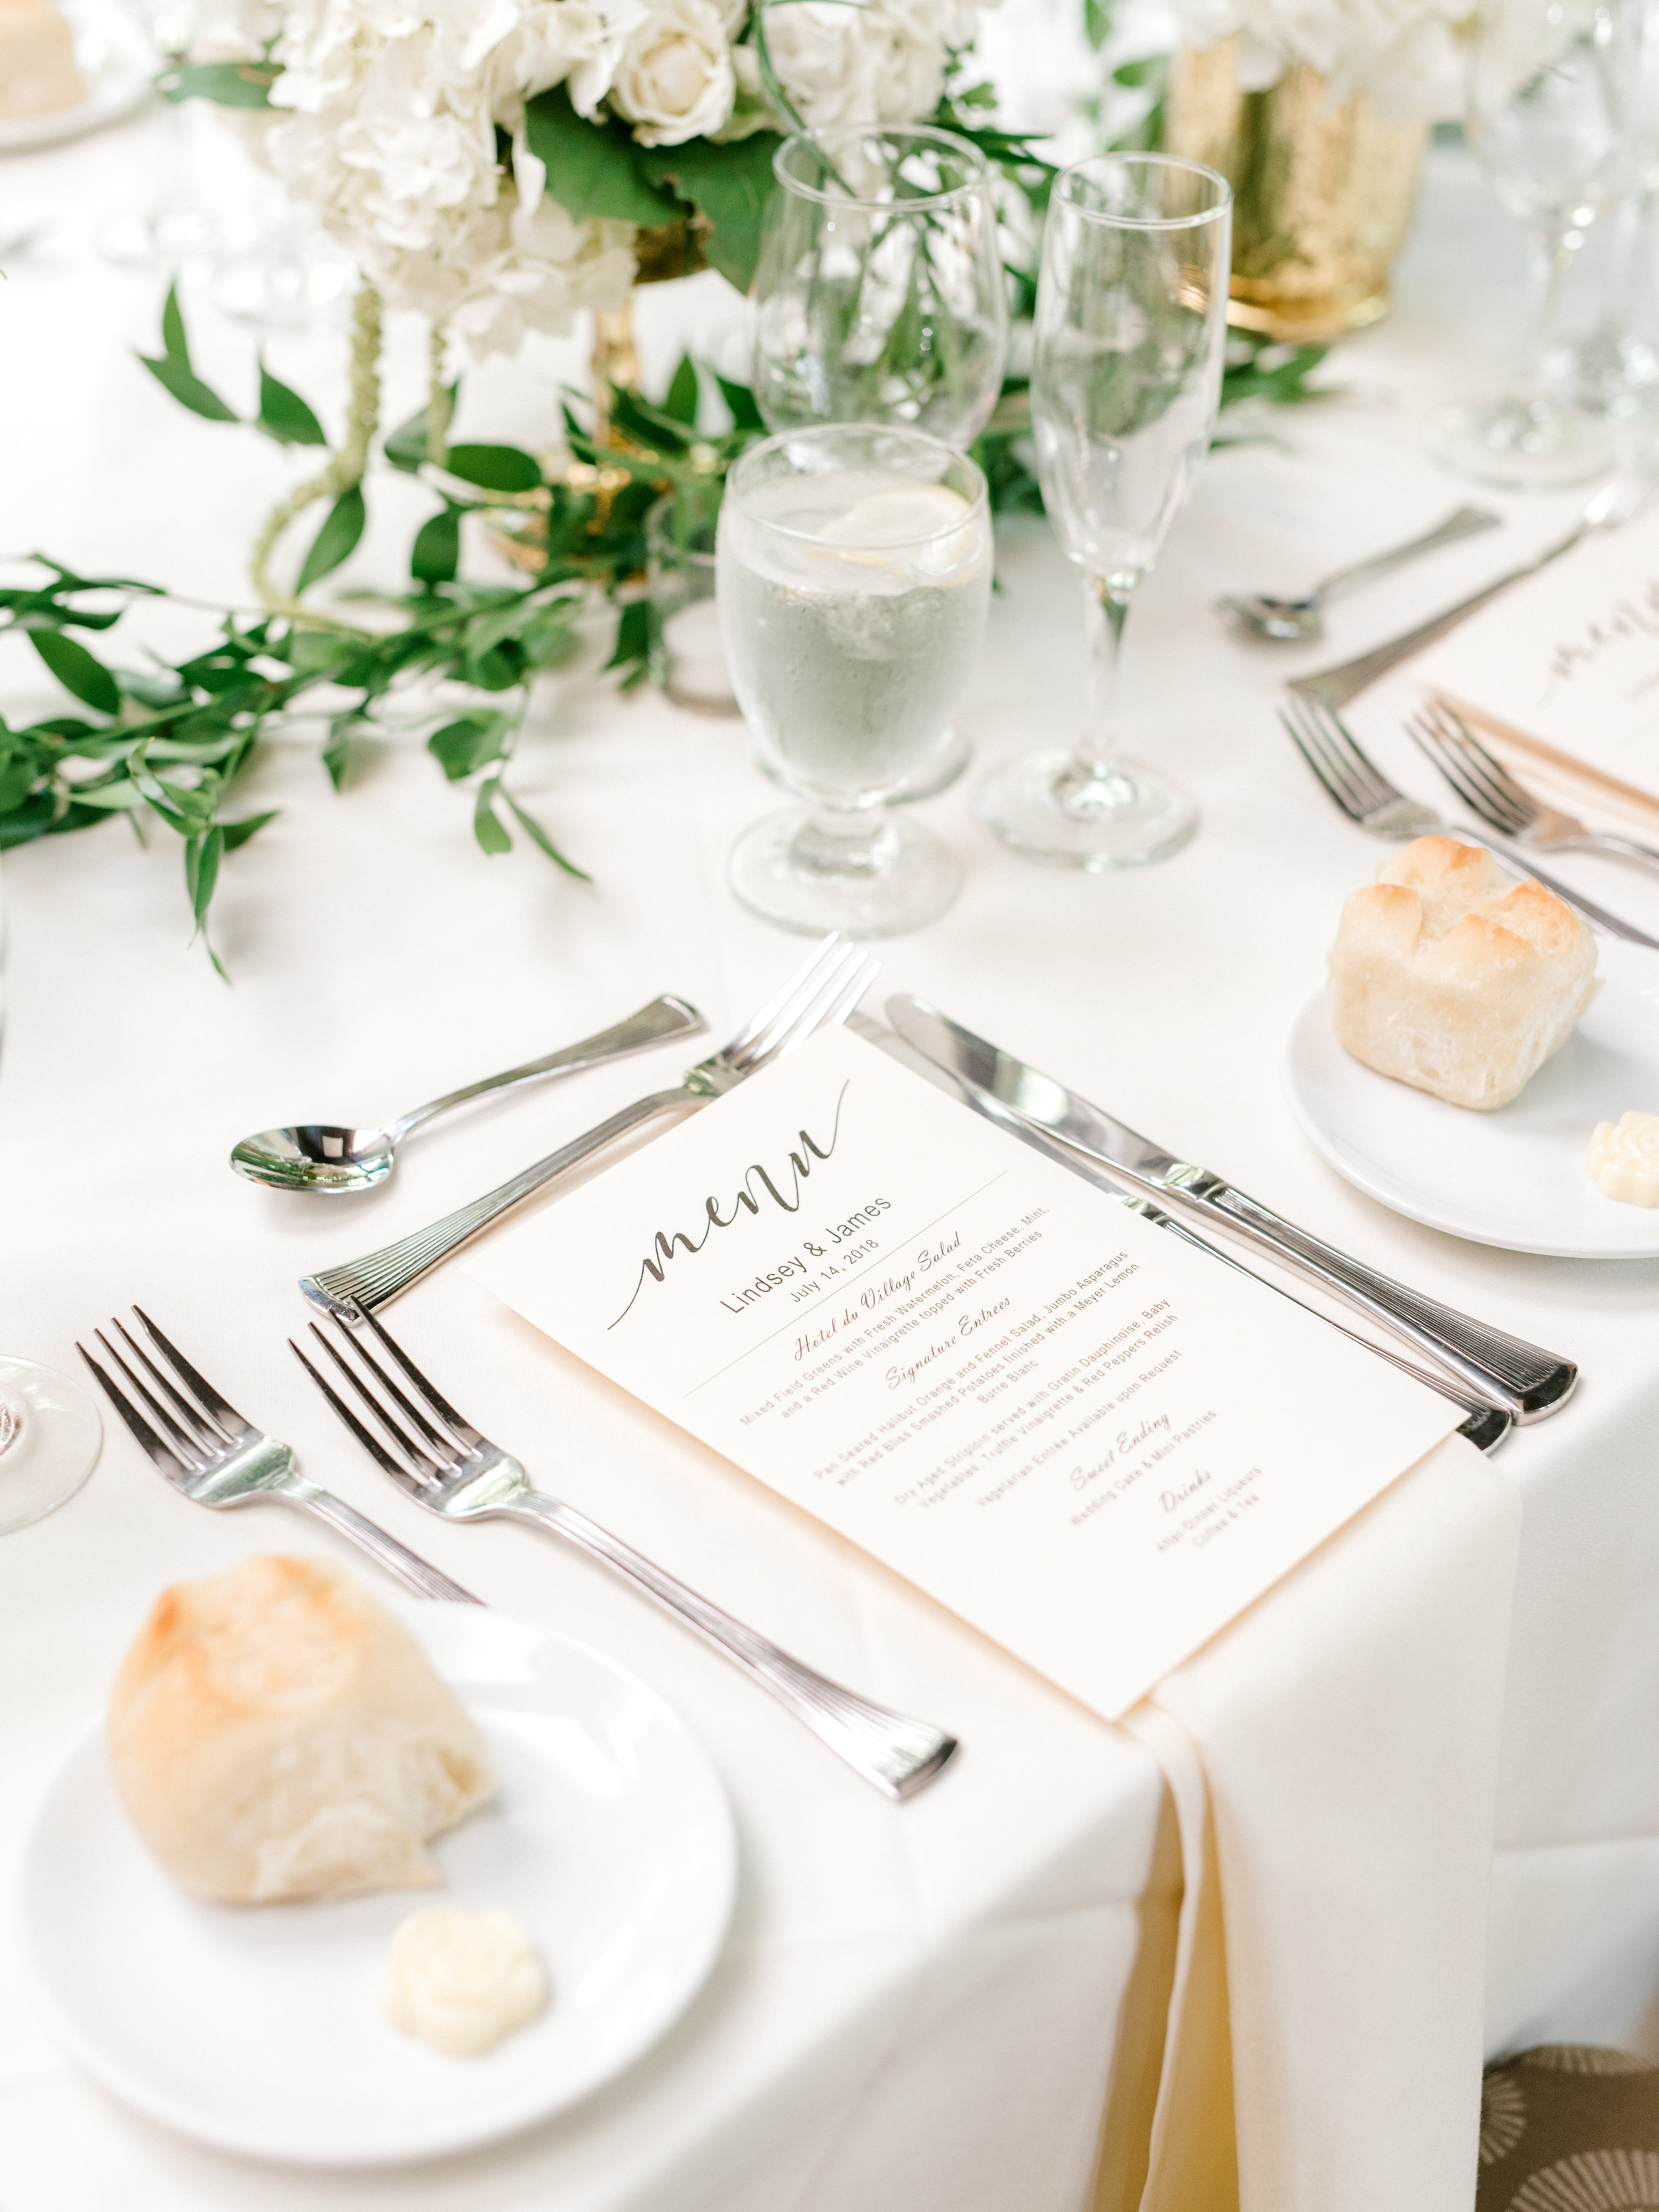 An elegant white and green table setting adds a touch of opulence to this bright and modern summer wedding at Hotel du Village.